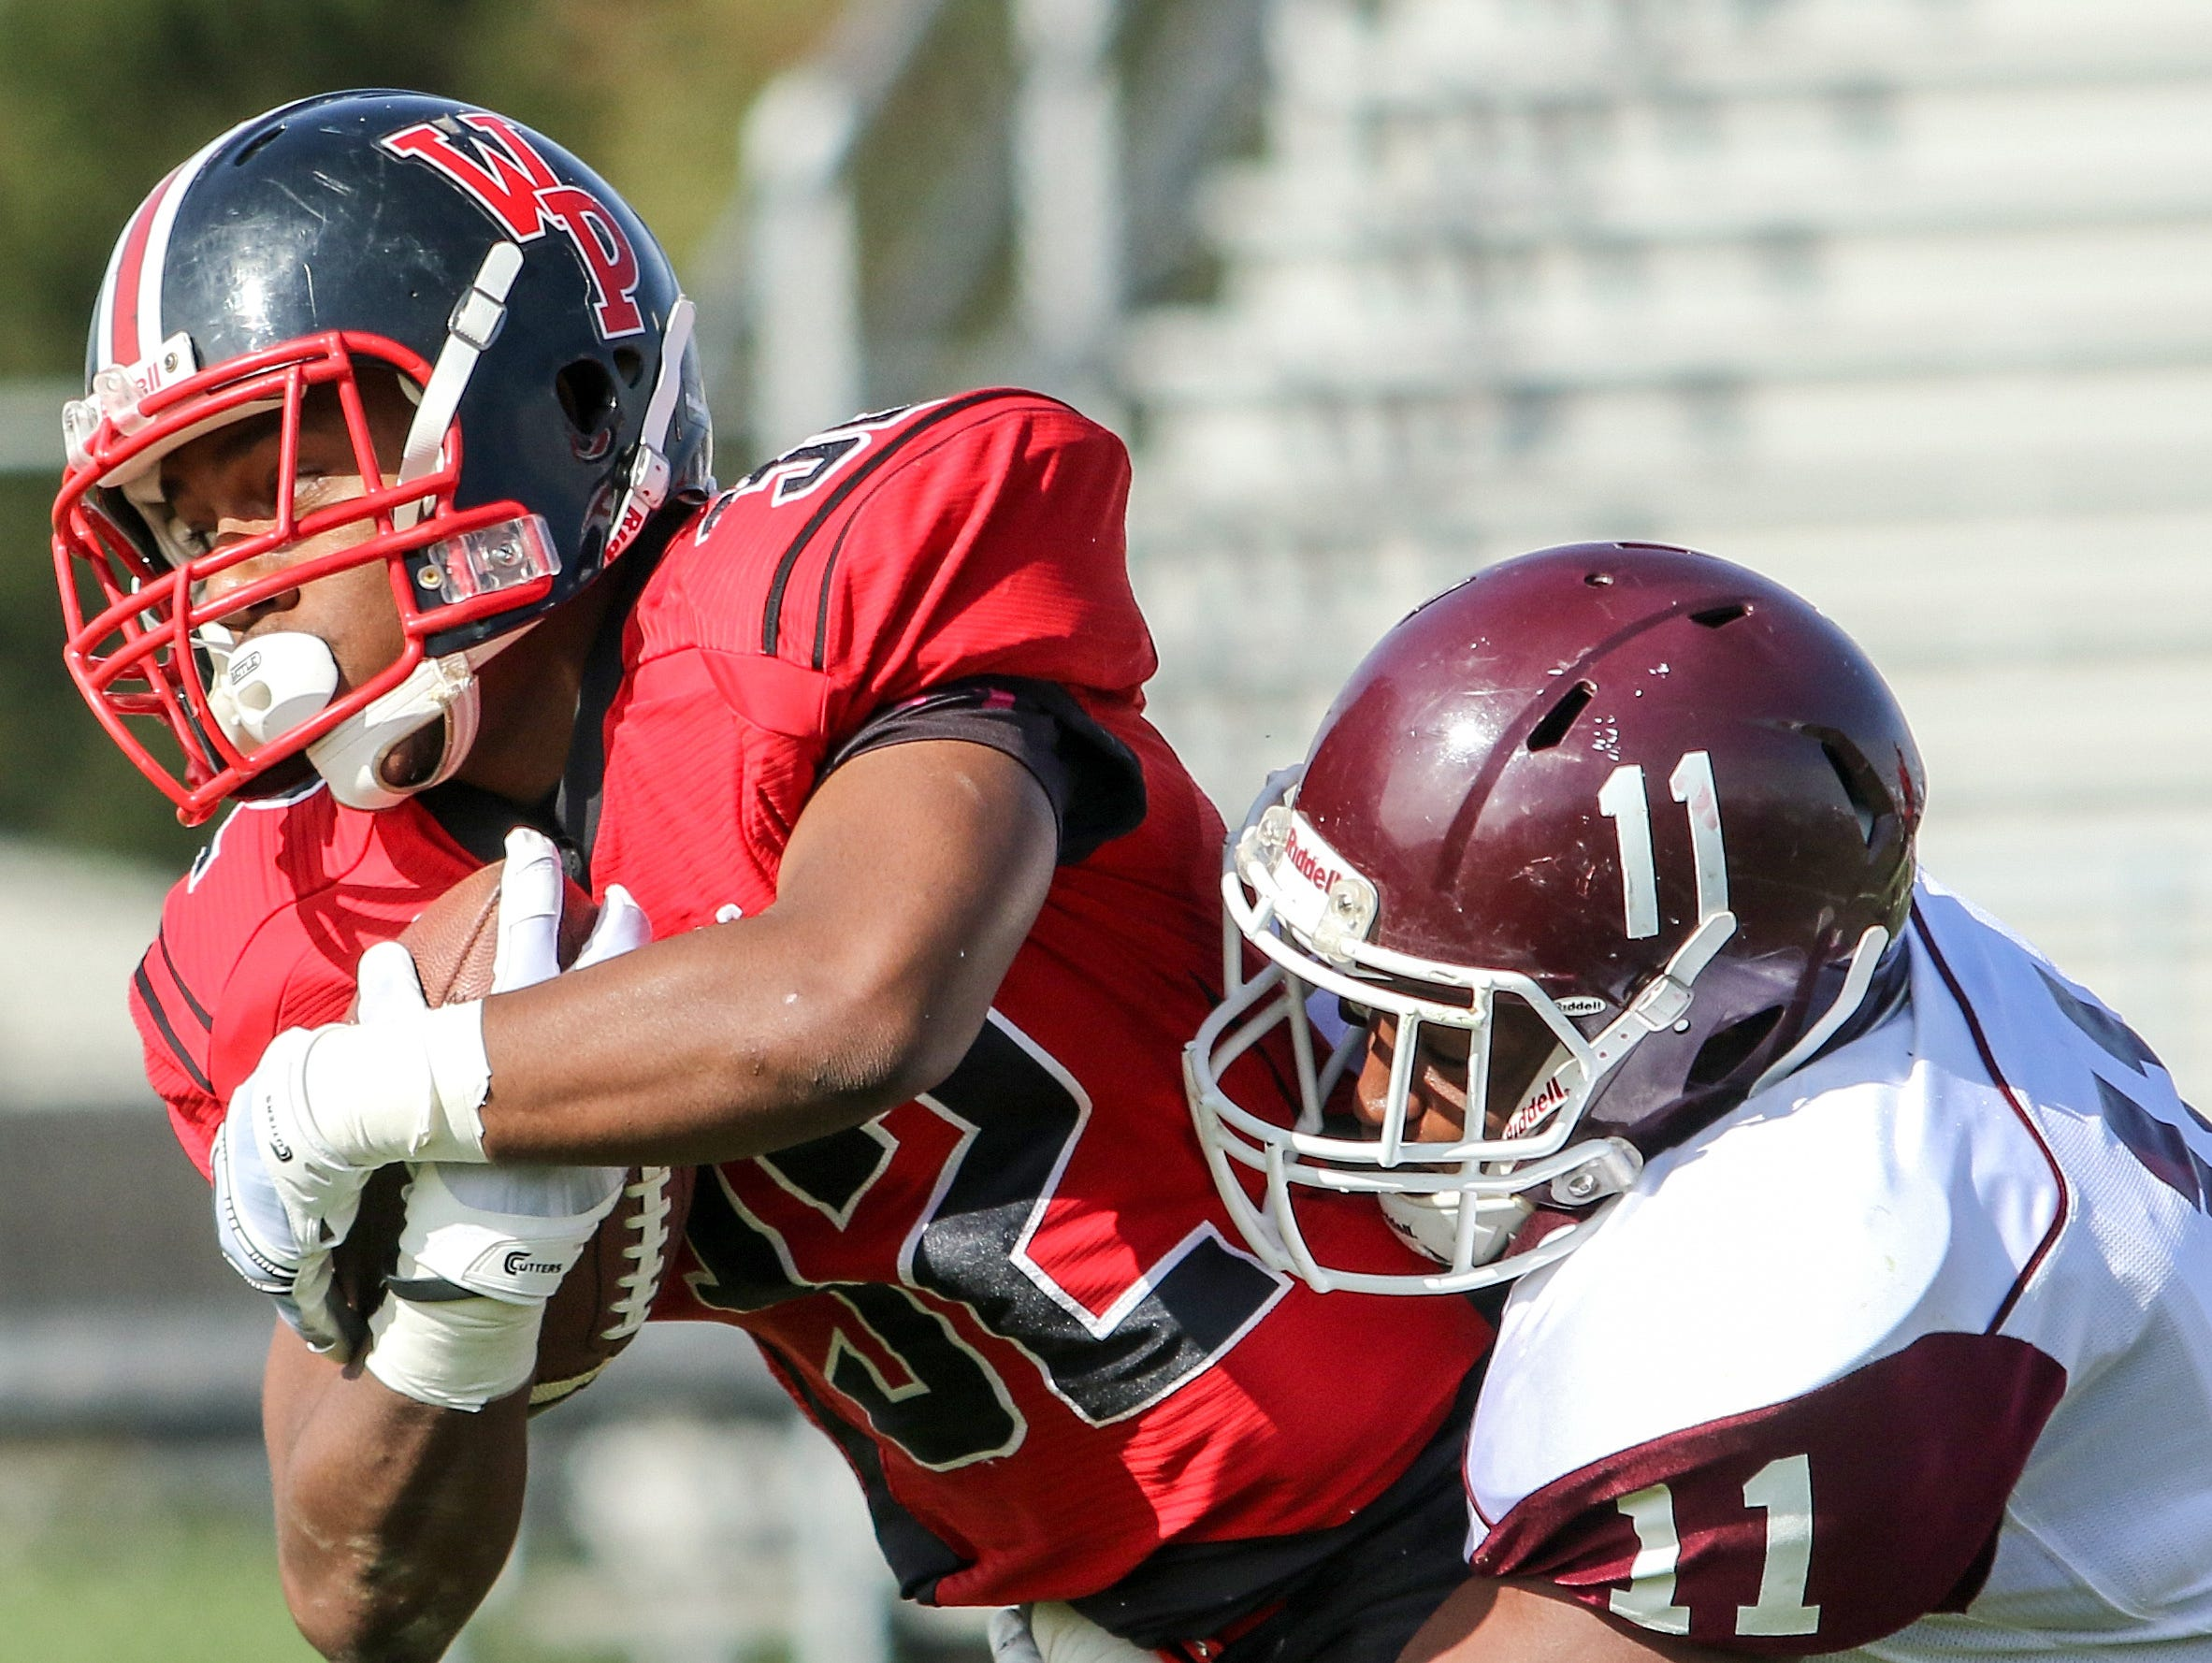 William Penn's Joe Greenwood is wrapped up by Concord's Avery Roberts.